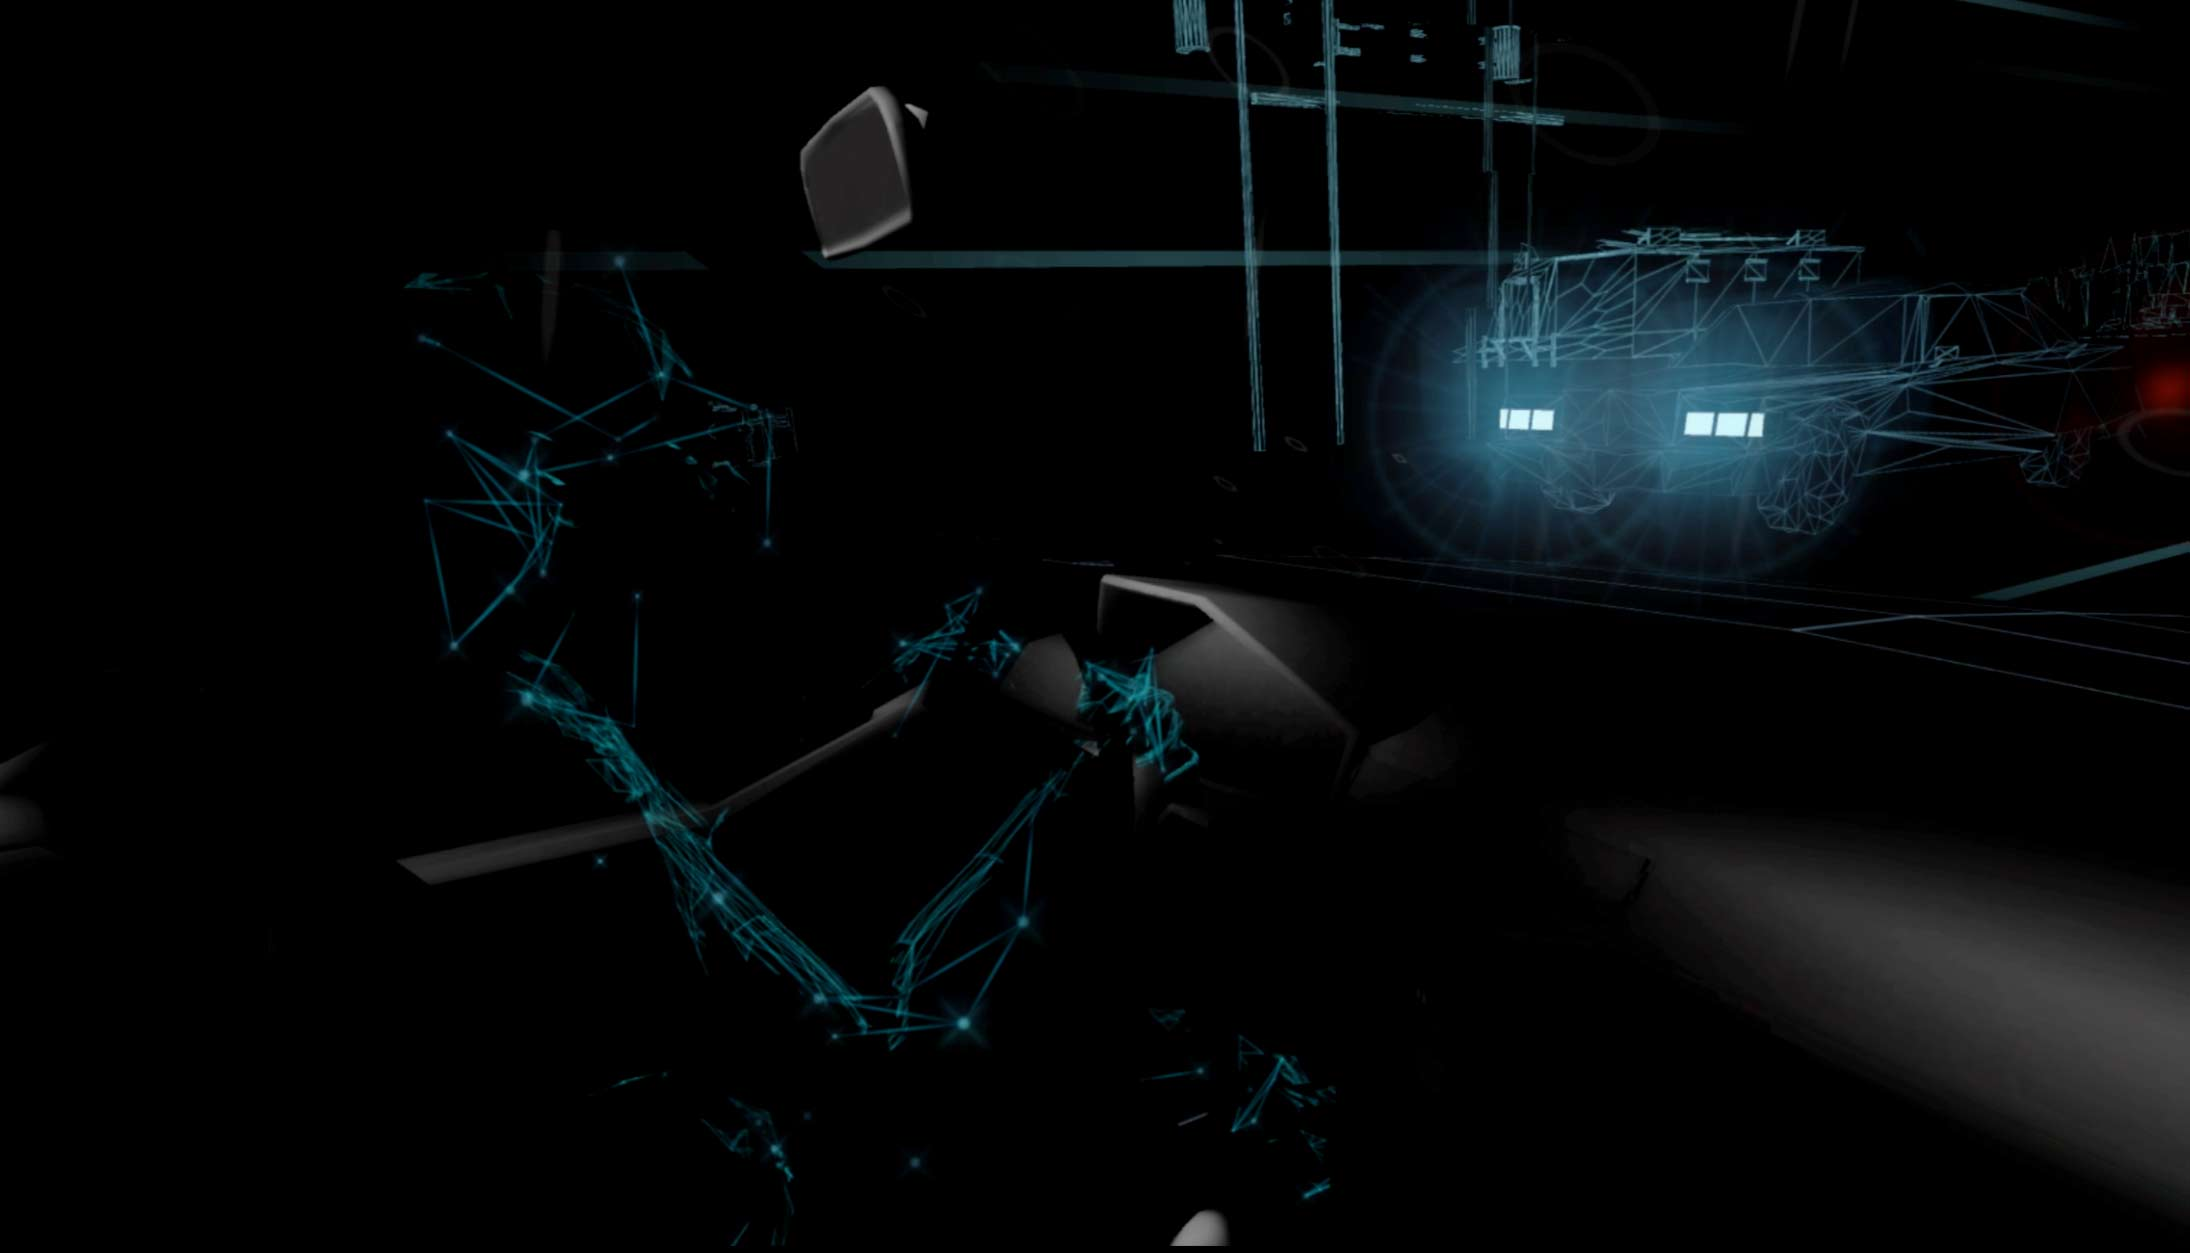 Dispatch-vr-experience-3d-animation-simulation_13.jpg